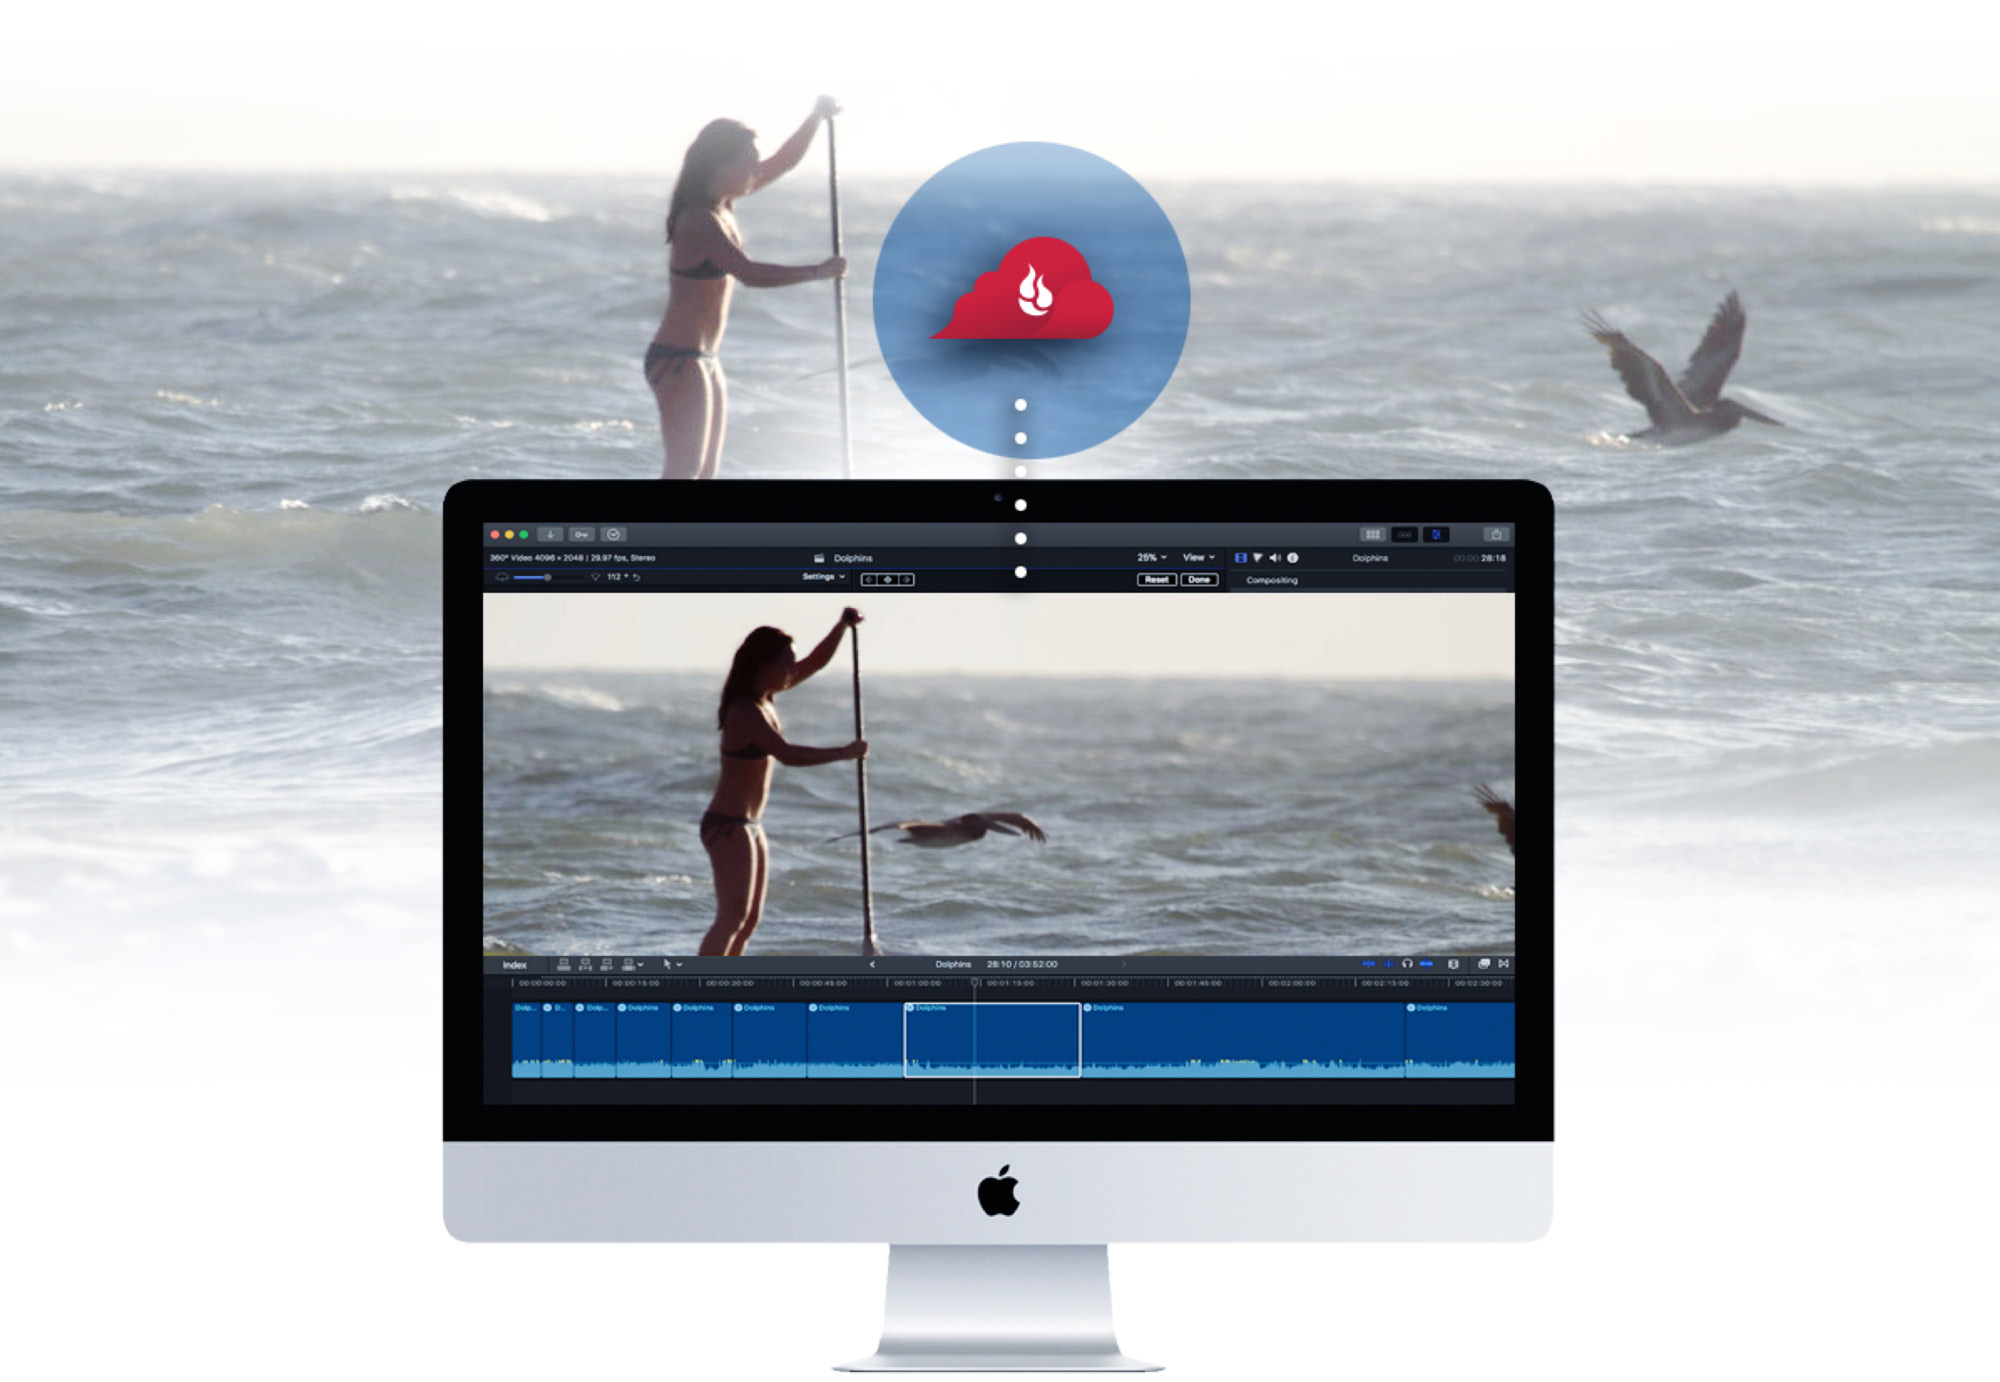 Editing paddle board video stored in the cloud